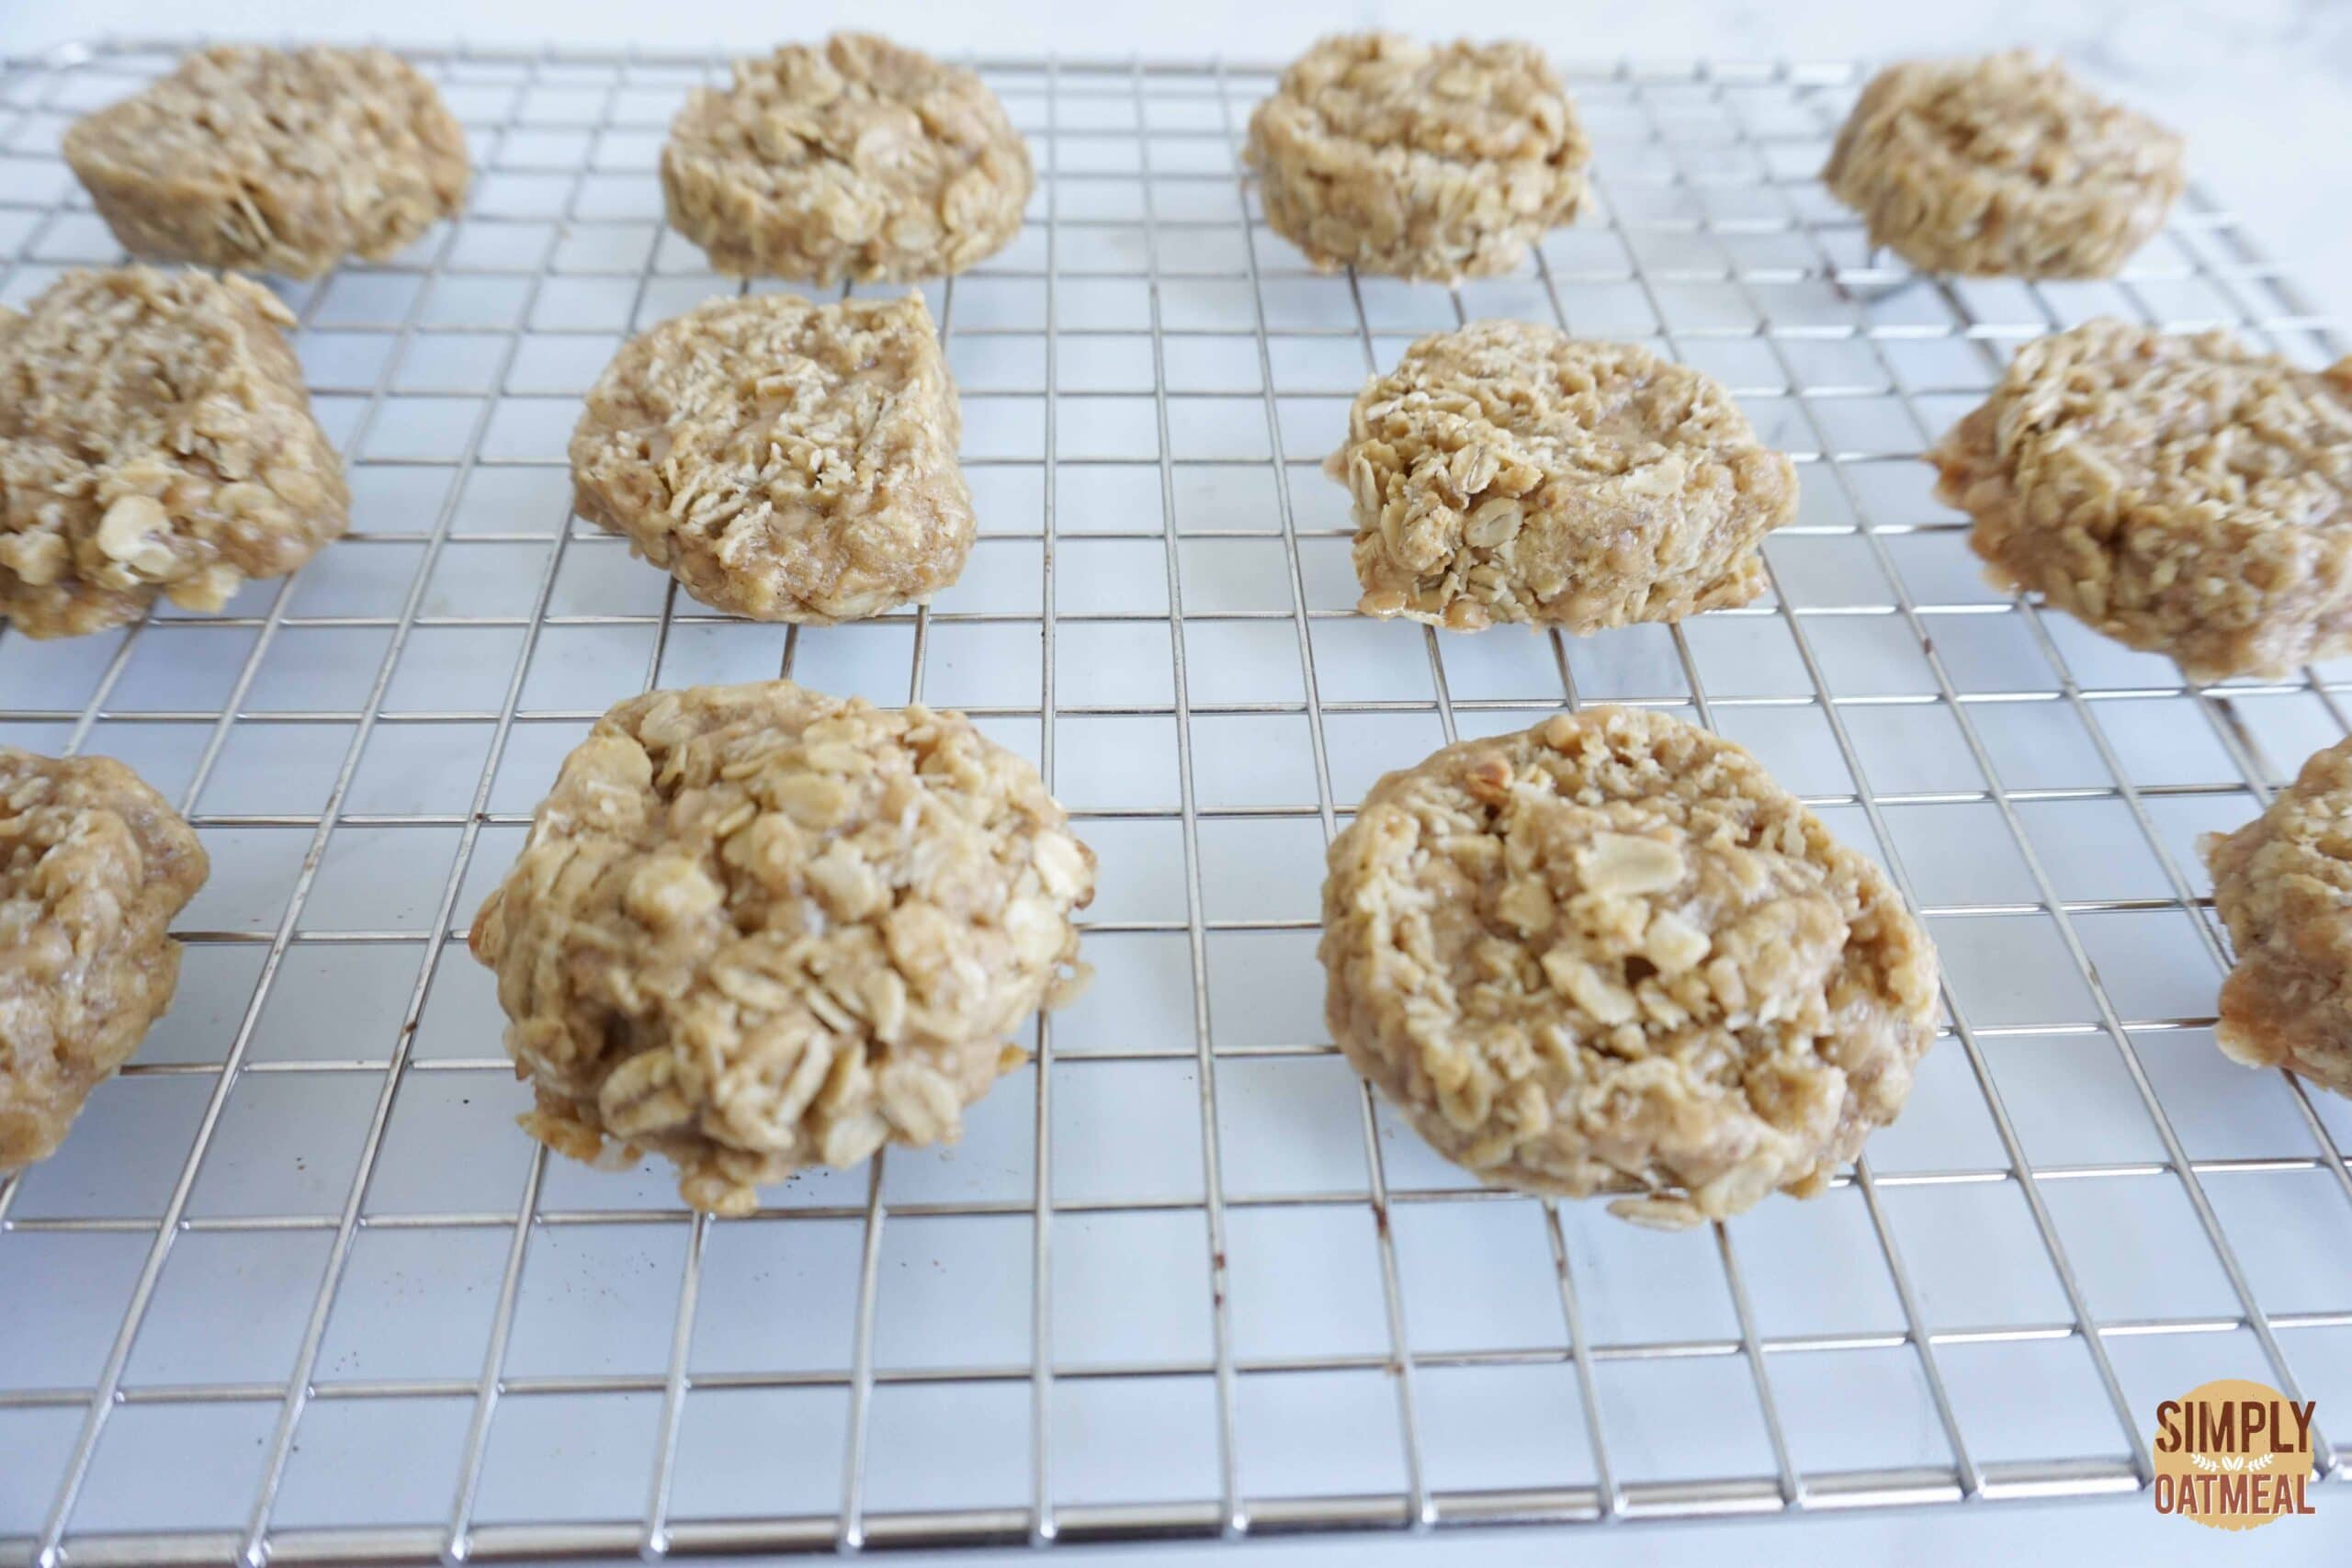 Hot toffee coconut oatmeal cookies cooling on a wire rack